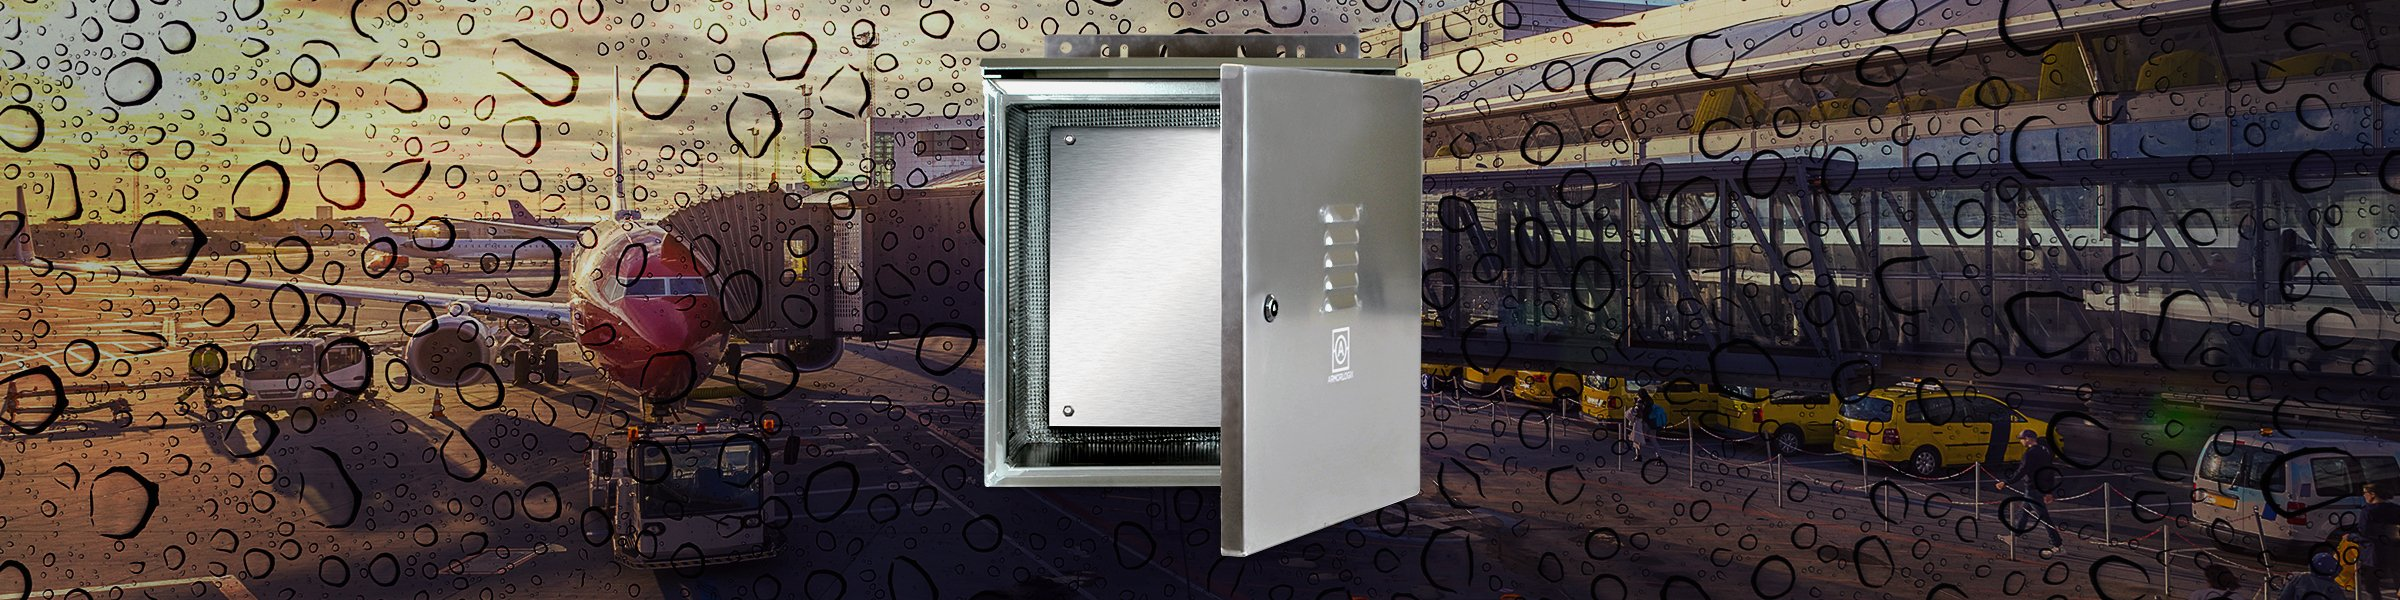 armorlogix-weatherproof-enclosures